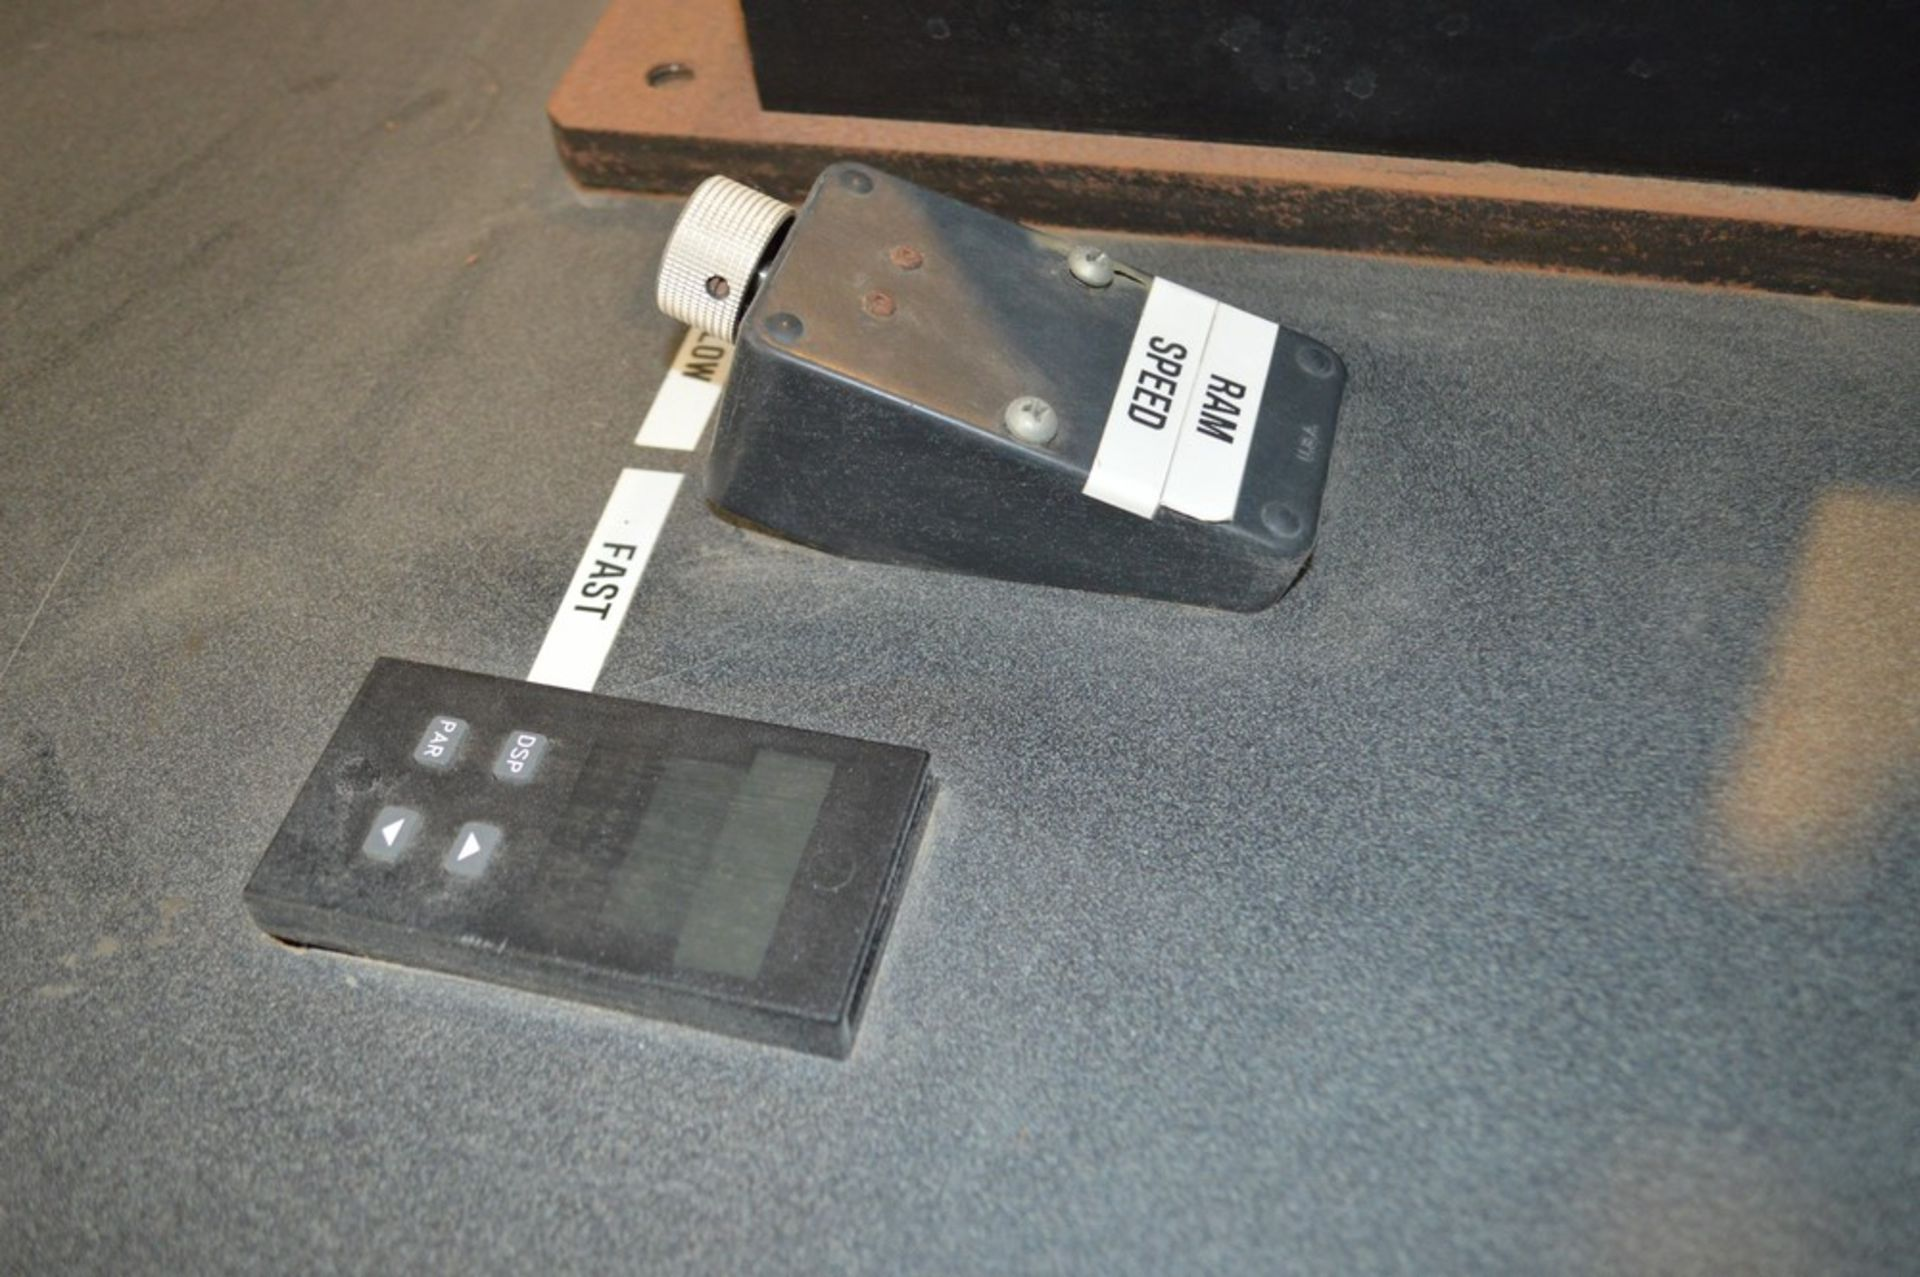 4 Post horizontal press with stand, 3000 psi, RAM speed controls - Image 7 of 8